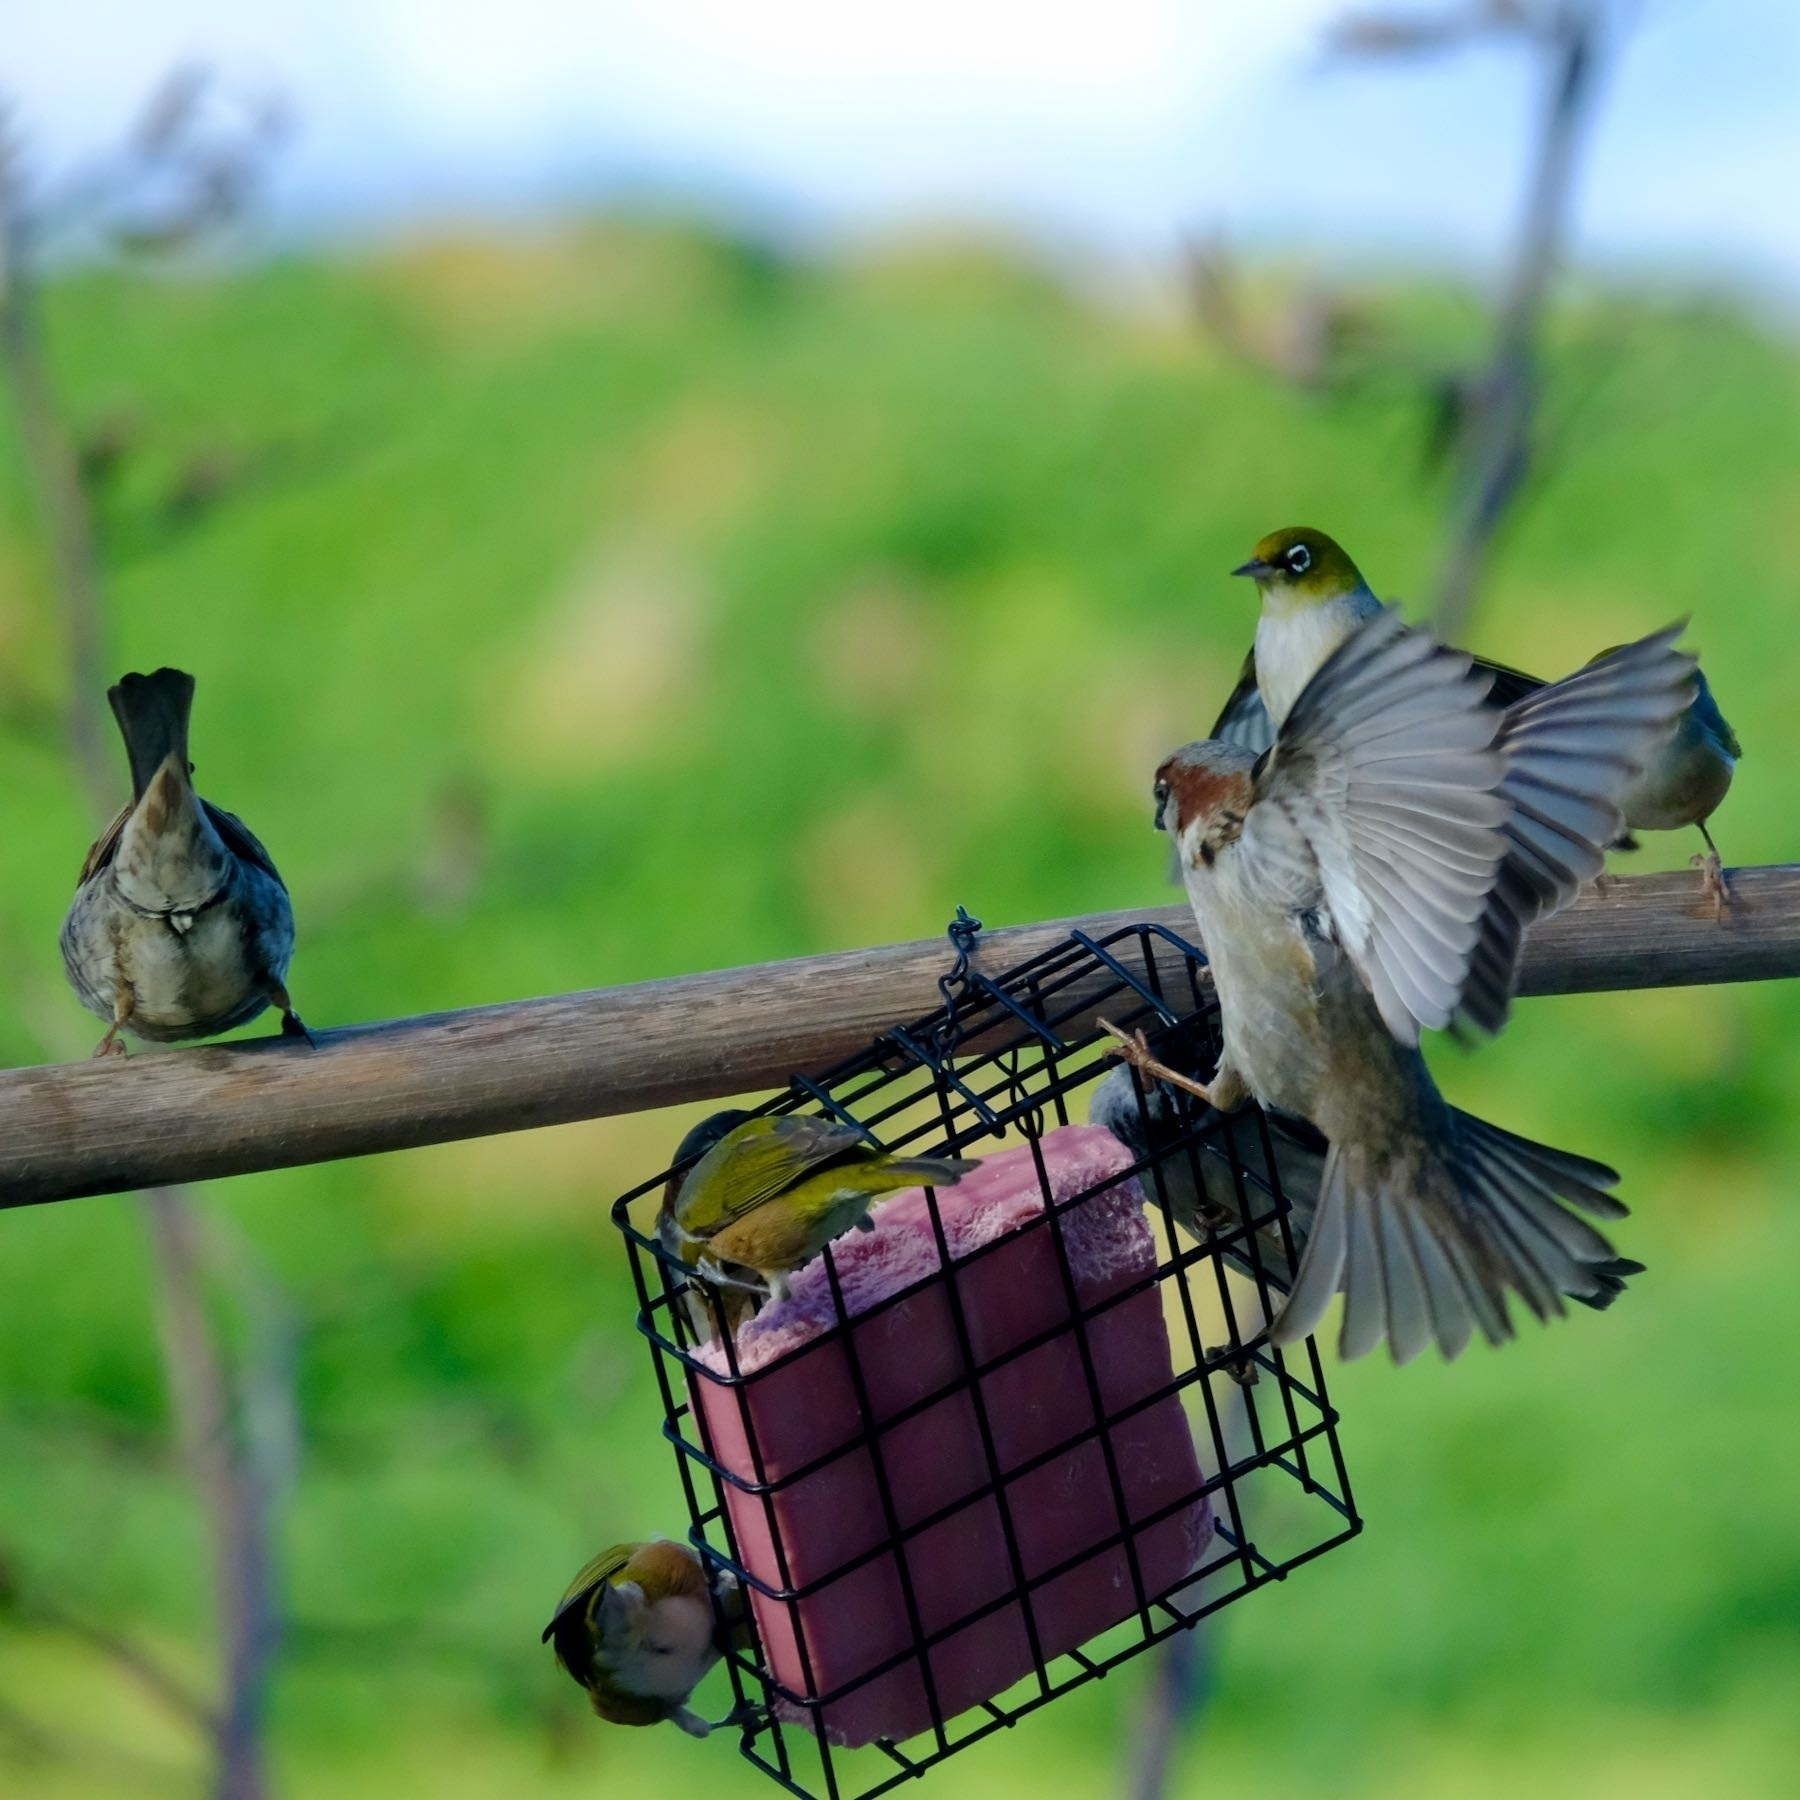 SParrow landing with open wings.